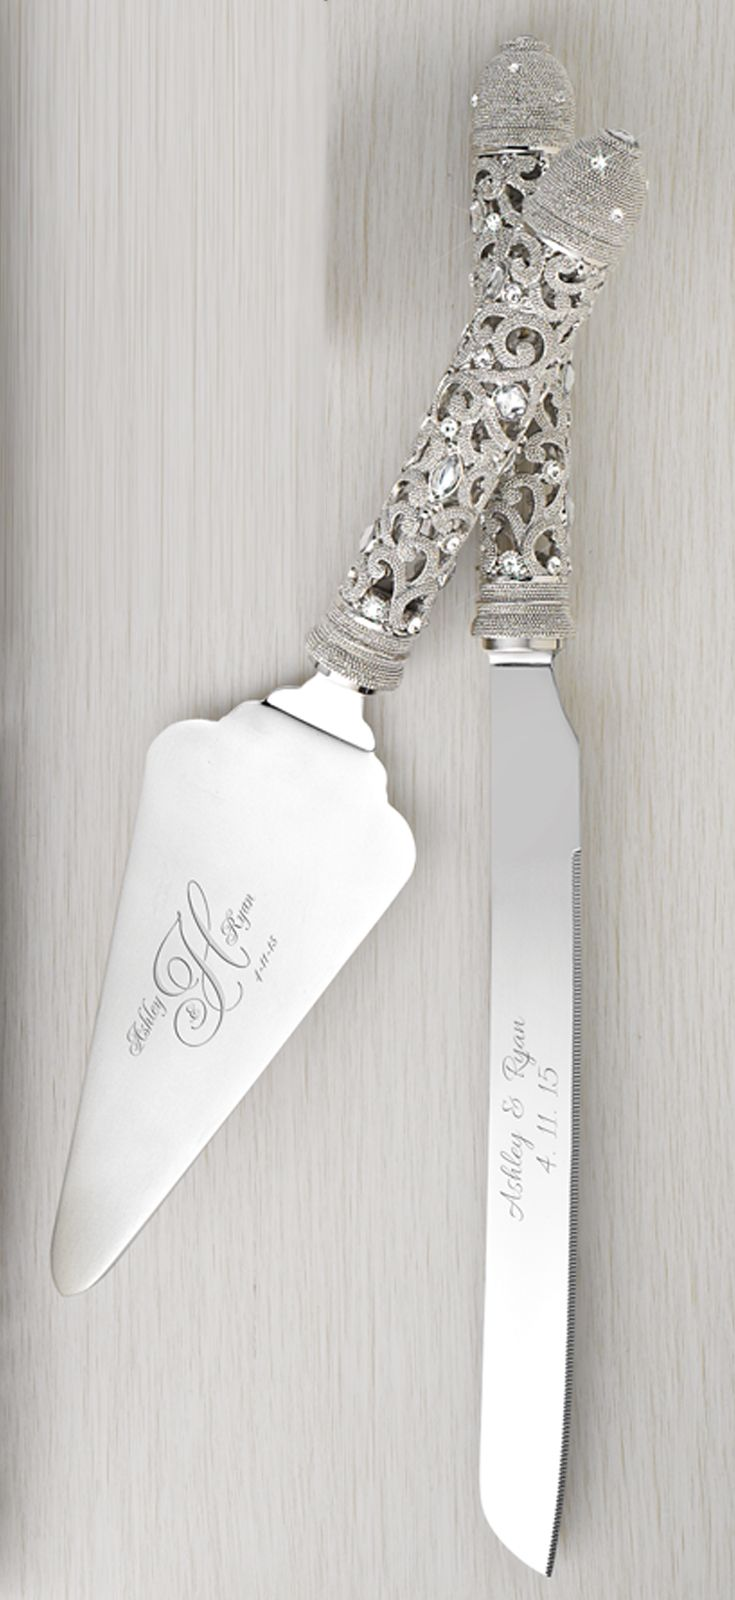 You could #win your #wedding flutes & cake server set! 1. Follow ...